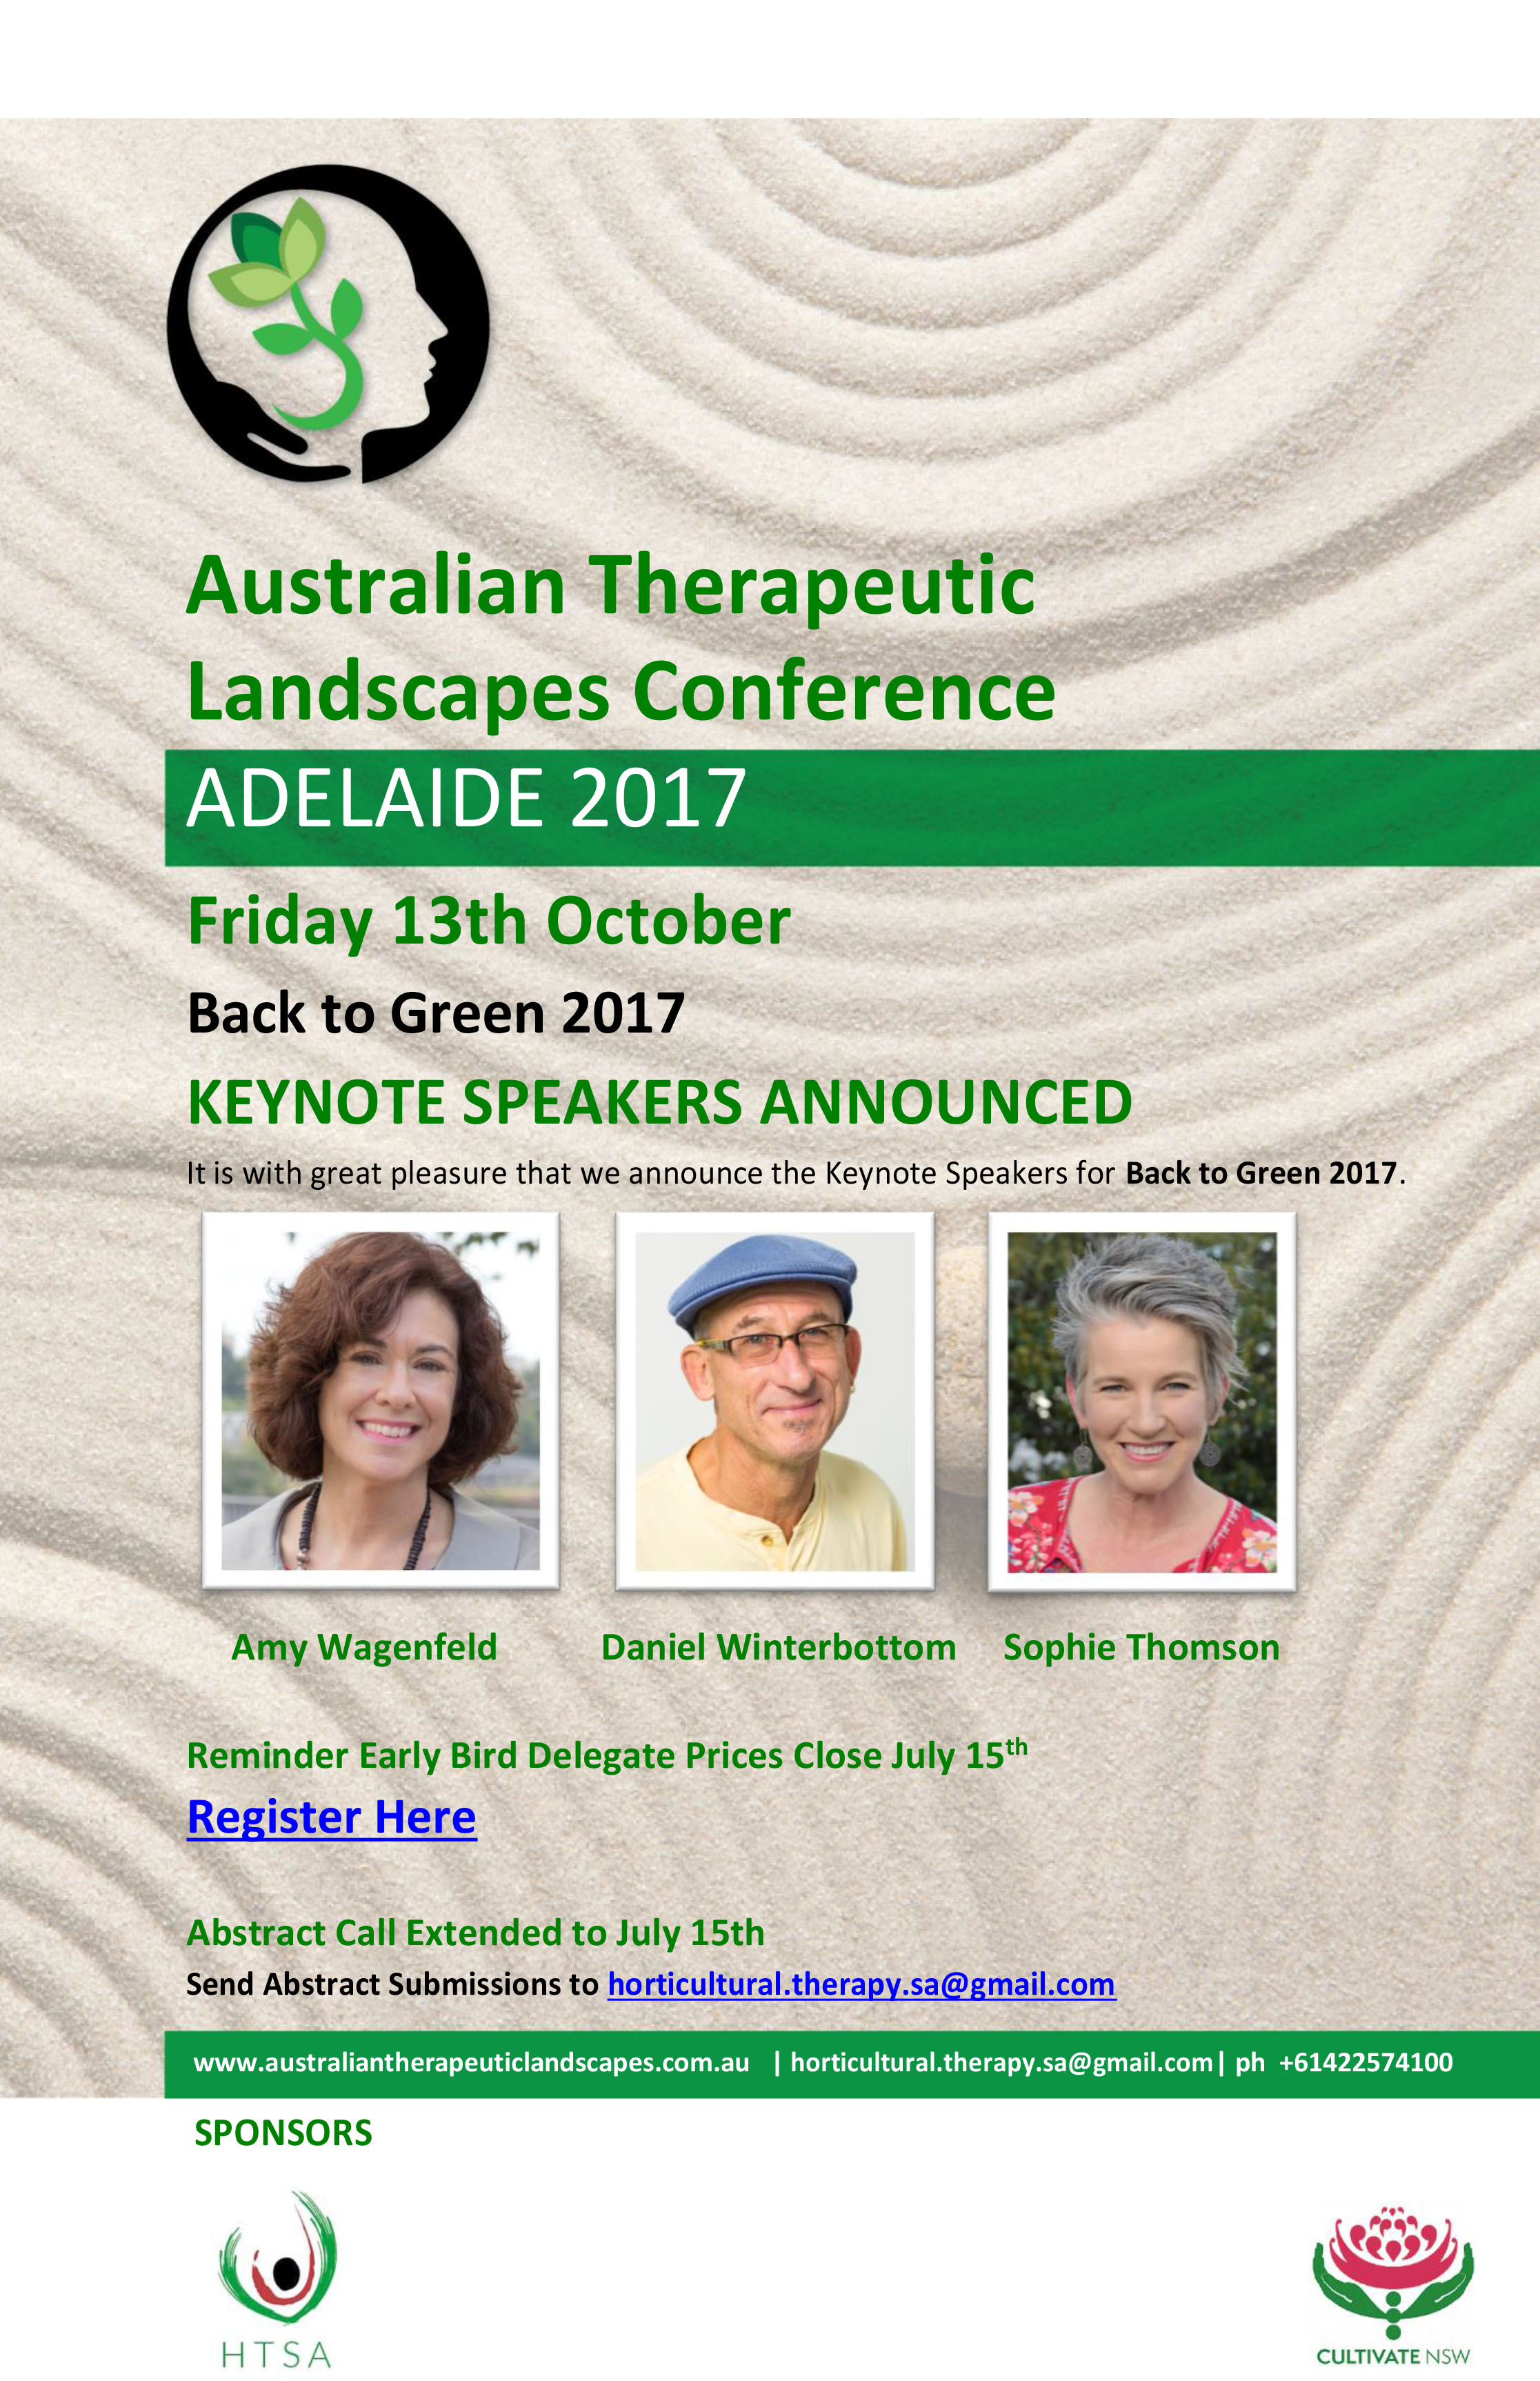 Australian Therapeutic Landscapes Conference 2017 Keynotes